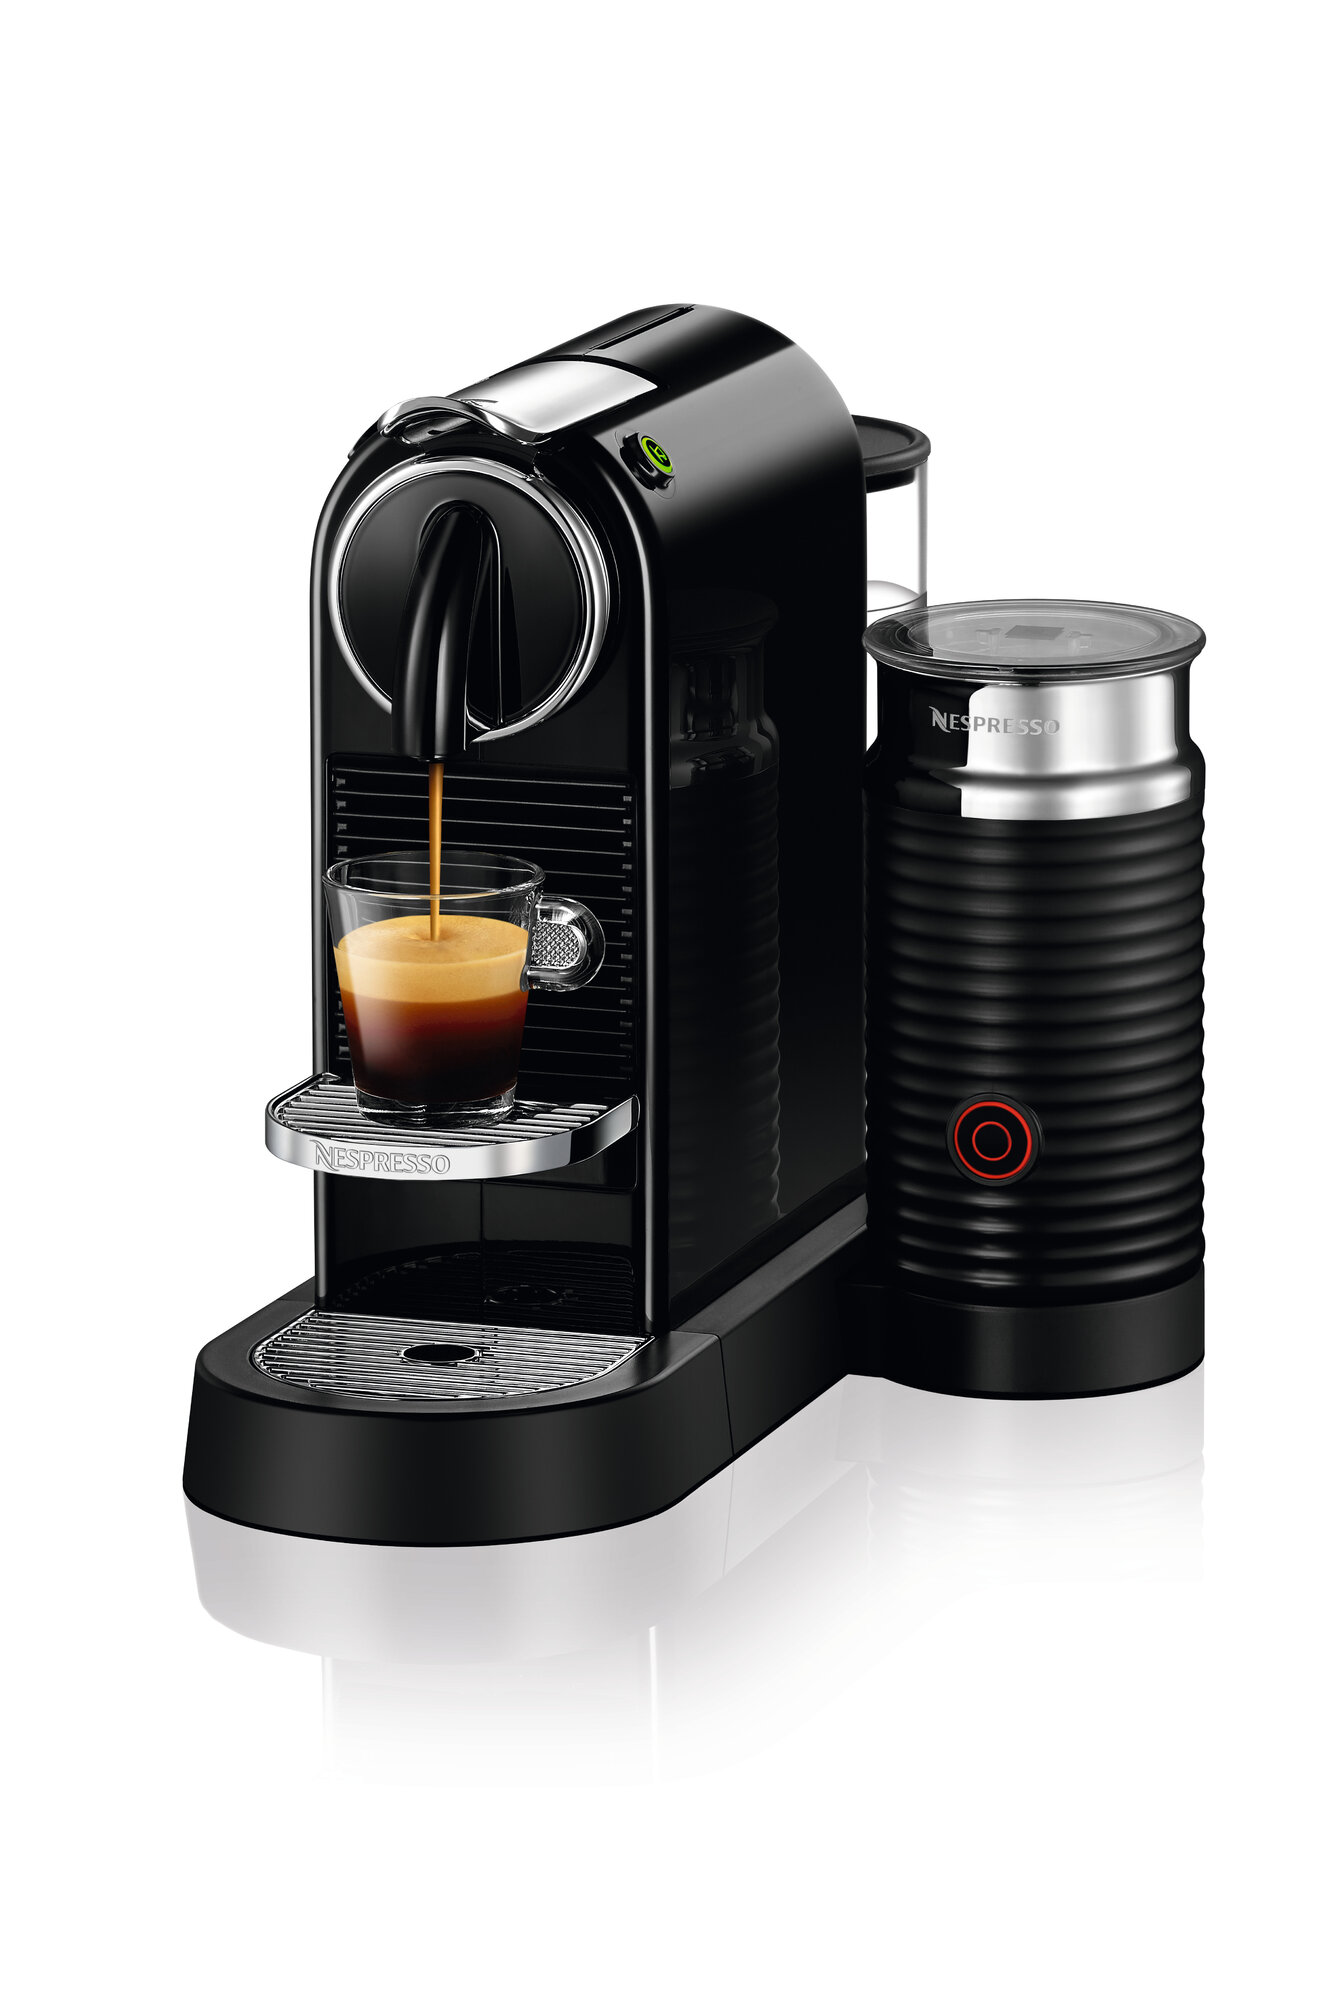 George Home Coffee Maker : Nespresso Citiz Espresso Maker with Milk Frother eBay